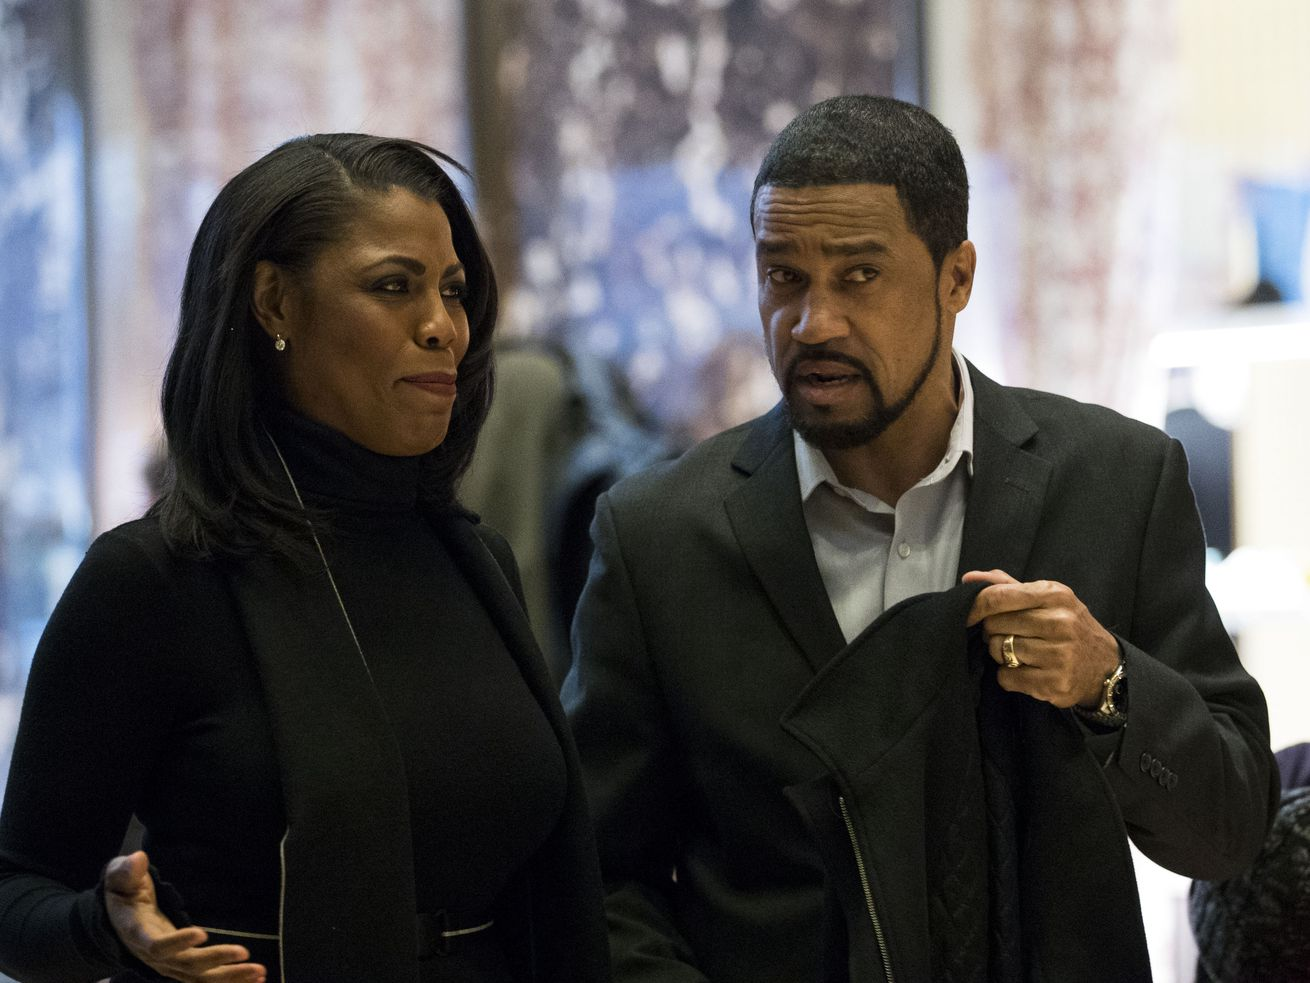 Omarosa Manigault-Newman and Pastor Darrell Scott arriving at Trump Tower in New York City in December 2016.